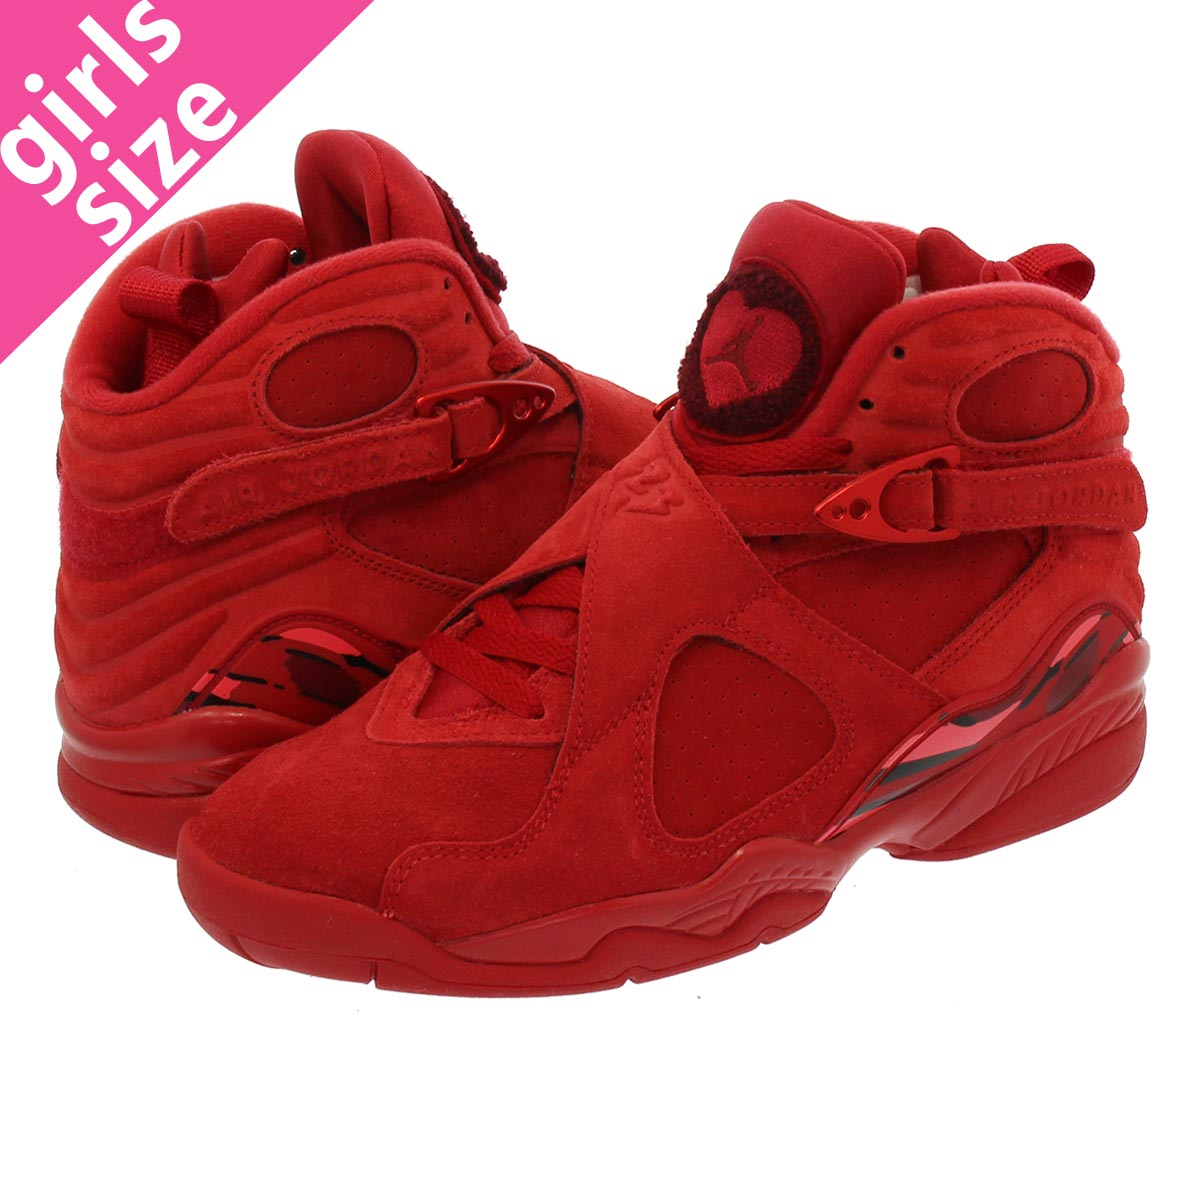 c8b476943fbea7 uk retro 11 size 8 d6849 cd789  shop nike wmns air jordan 8 retro vday nike  women air jordan 8 nostalgic gym red